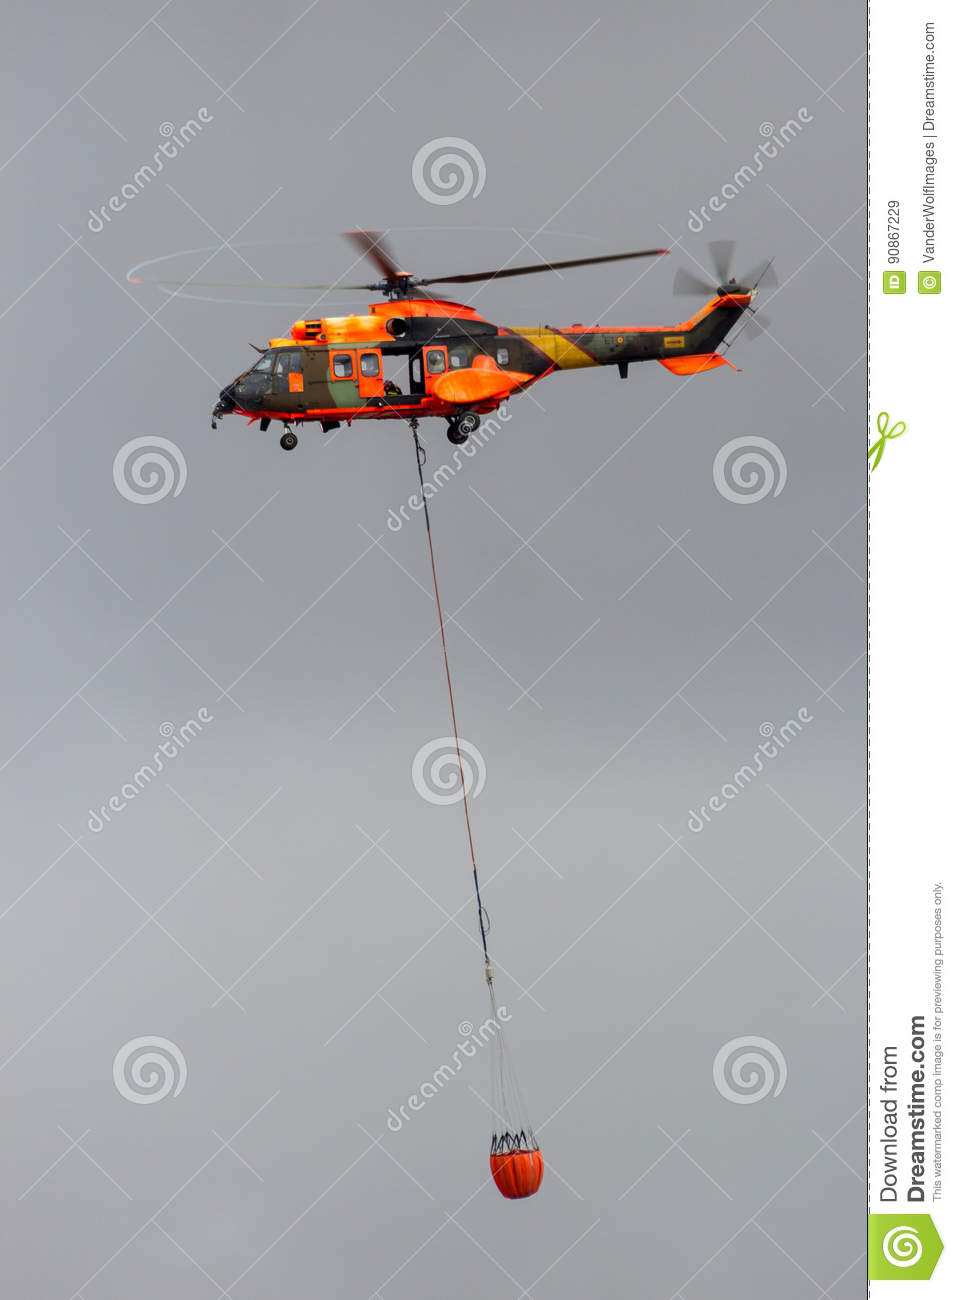 Cougar helicopter bambi bucket